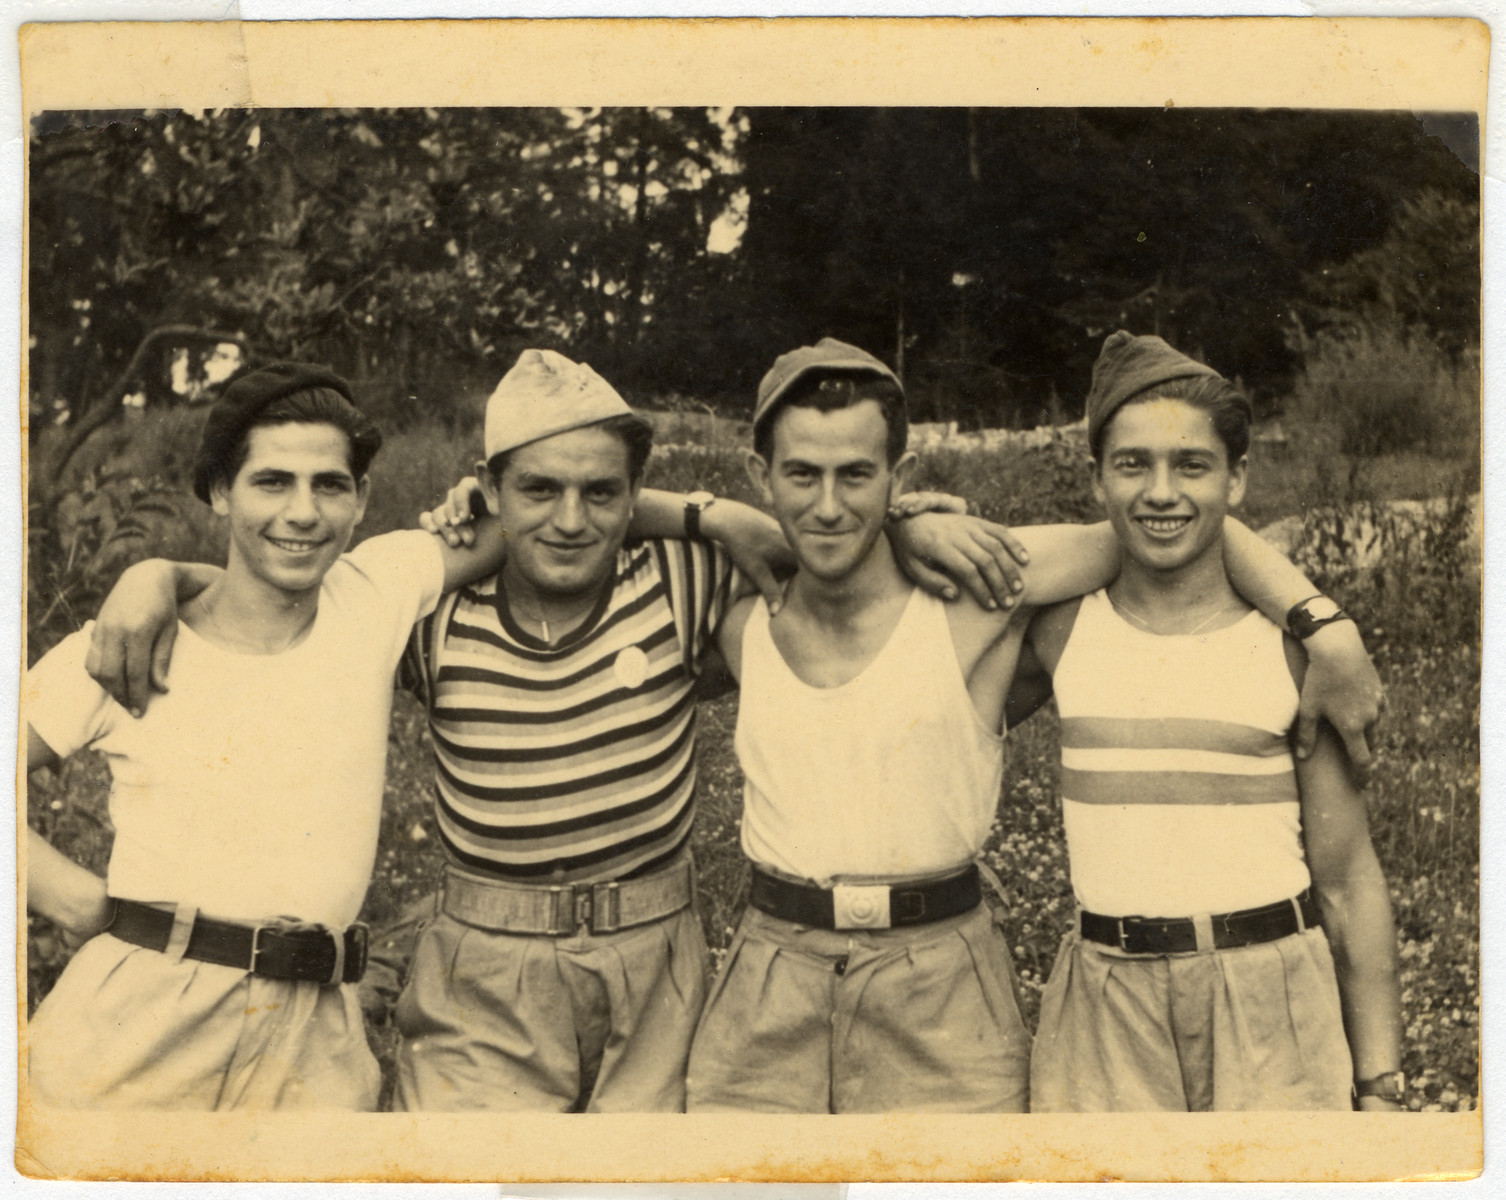 Group portrait of displaced persons in Kibbutz Mekor Baruch, a Poal Mizrachi fishing hachshara in Bacoli, Italy.  Pictured from left to right are Eliezer Majerovic, Aryeh Bein Horin, Yaakov Gutman and Meir (Miki) Weiss.